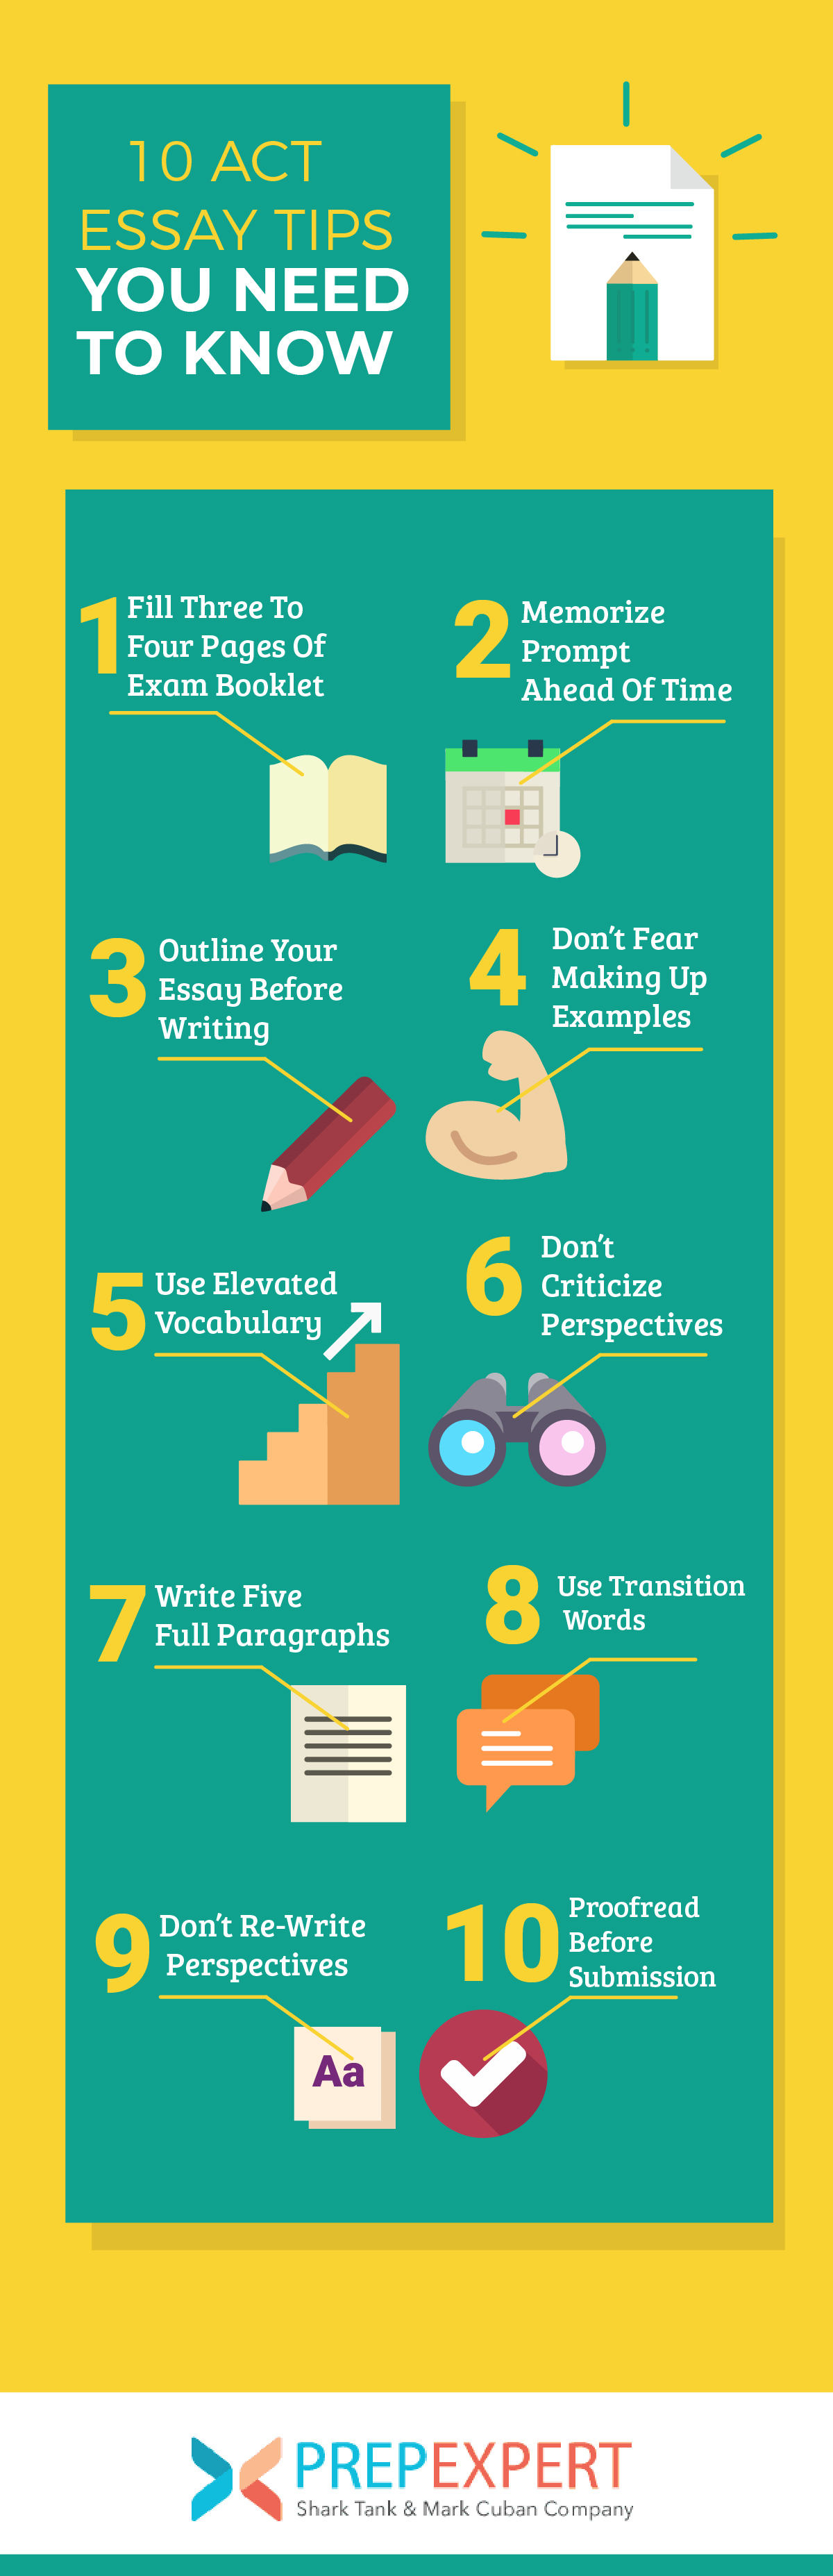 017 Essay Example Act 235585 Essayinfographics 052918 Fearsome New Time Limit Format Full